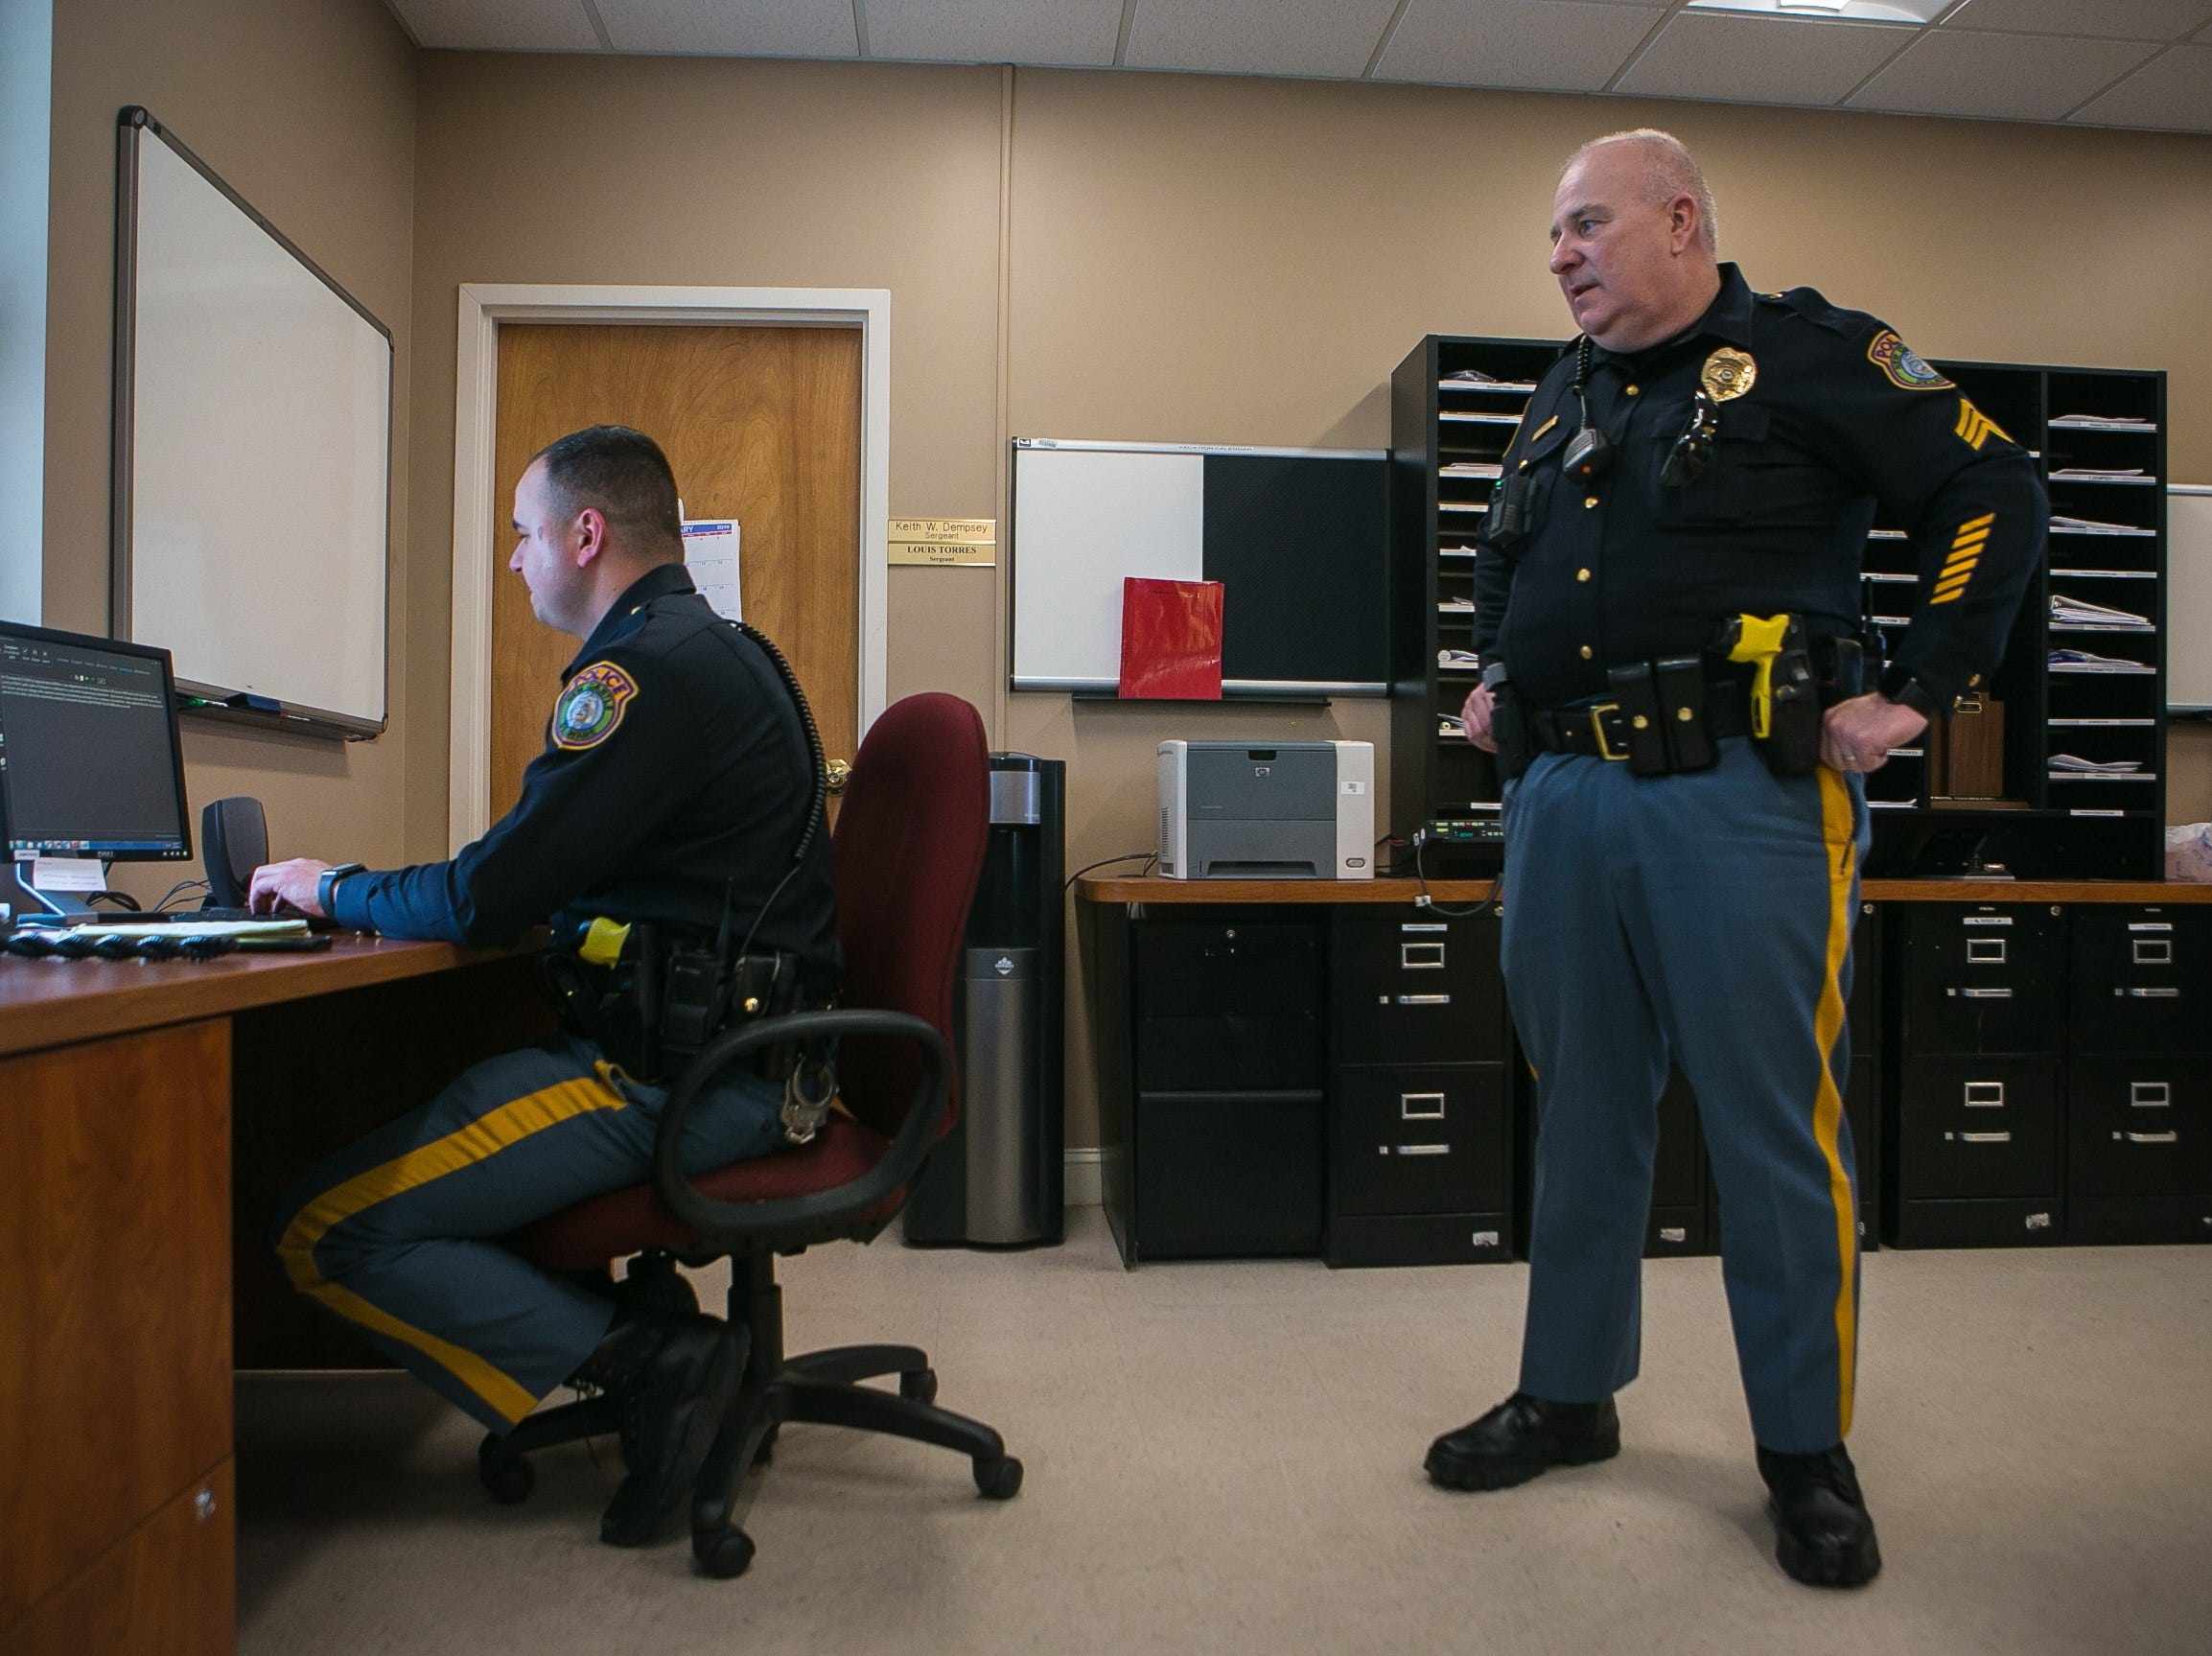 New Castle Police officer Dominick Mills, 23, prepares a warrant on a suspect as his supervisor Sgt. Keith Dempsey looks on.